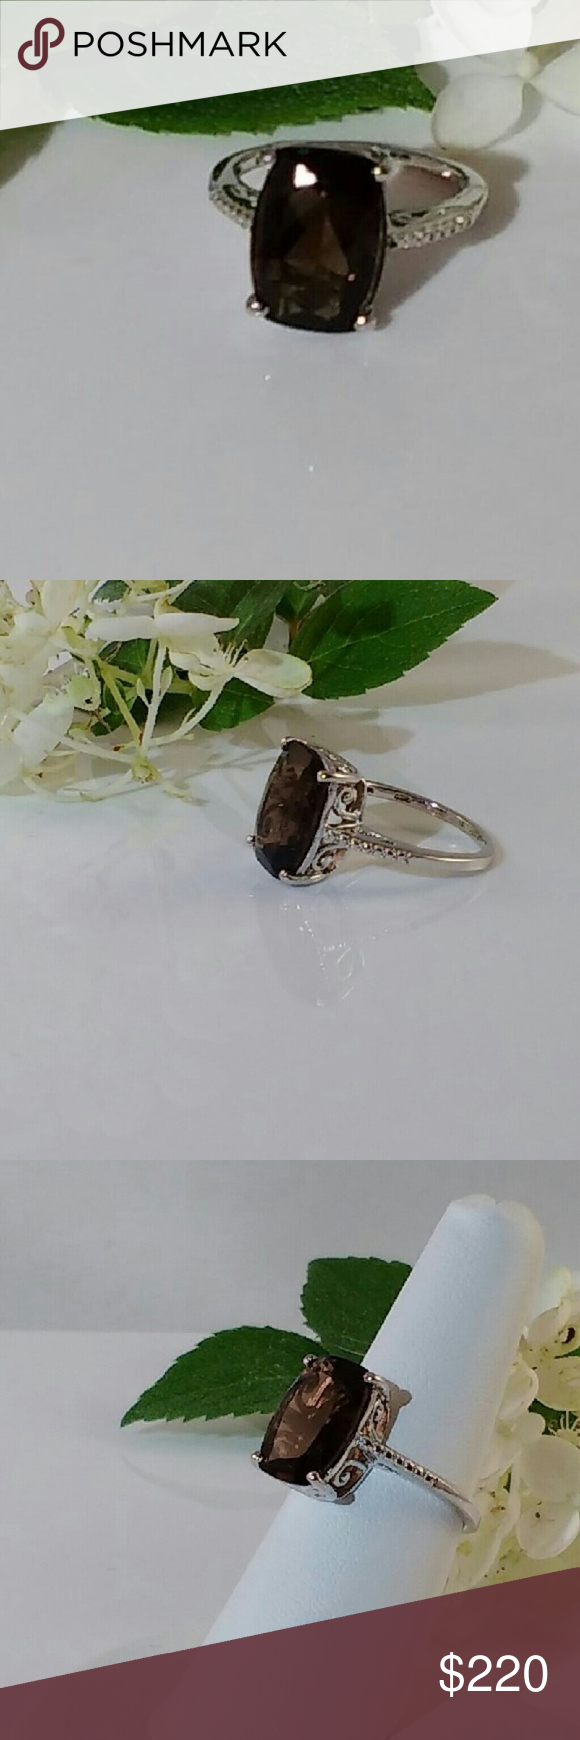 💐NEW LISTING💐 6.5 ct Smoky Quartz Ring You are assured of a look that will never go unnoticed!  The magnificent 6.5 carat rectangular cushion cut, smoky quartz gemstone measures 10x14mm. The stunning genuine smoky quartz is set on a platinum over sterling silver ring. New.  Measurements and weights are approximate. Photos may be enlarged to show detail. Jewelry Rings